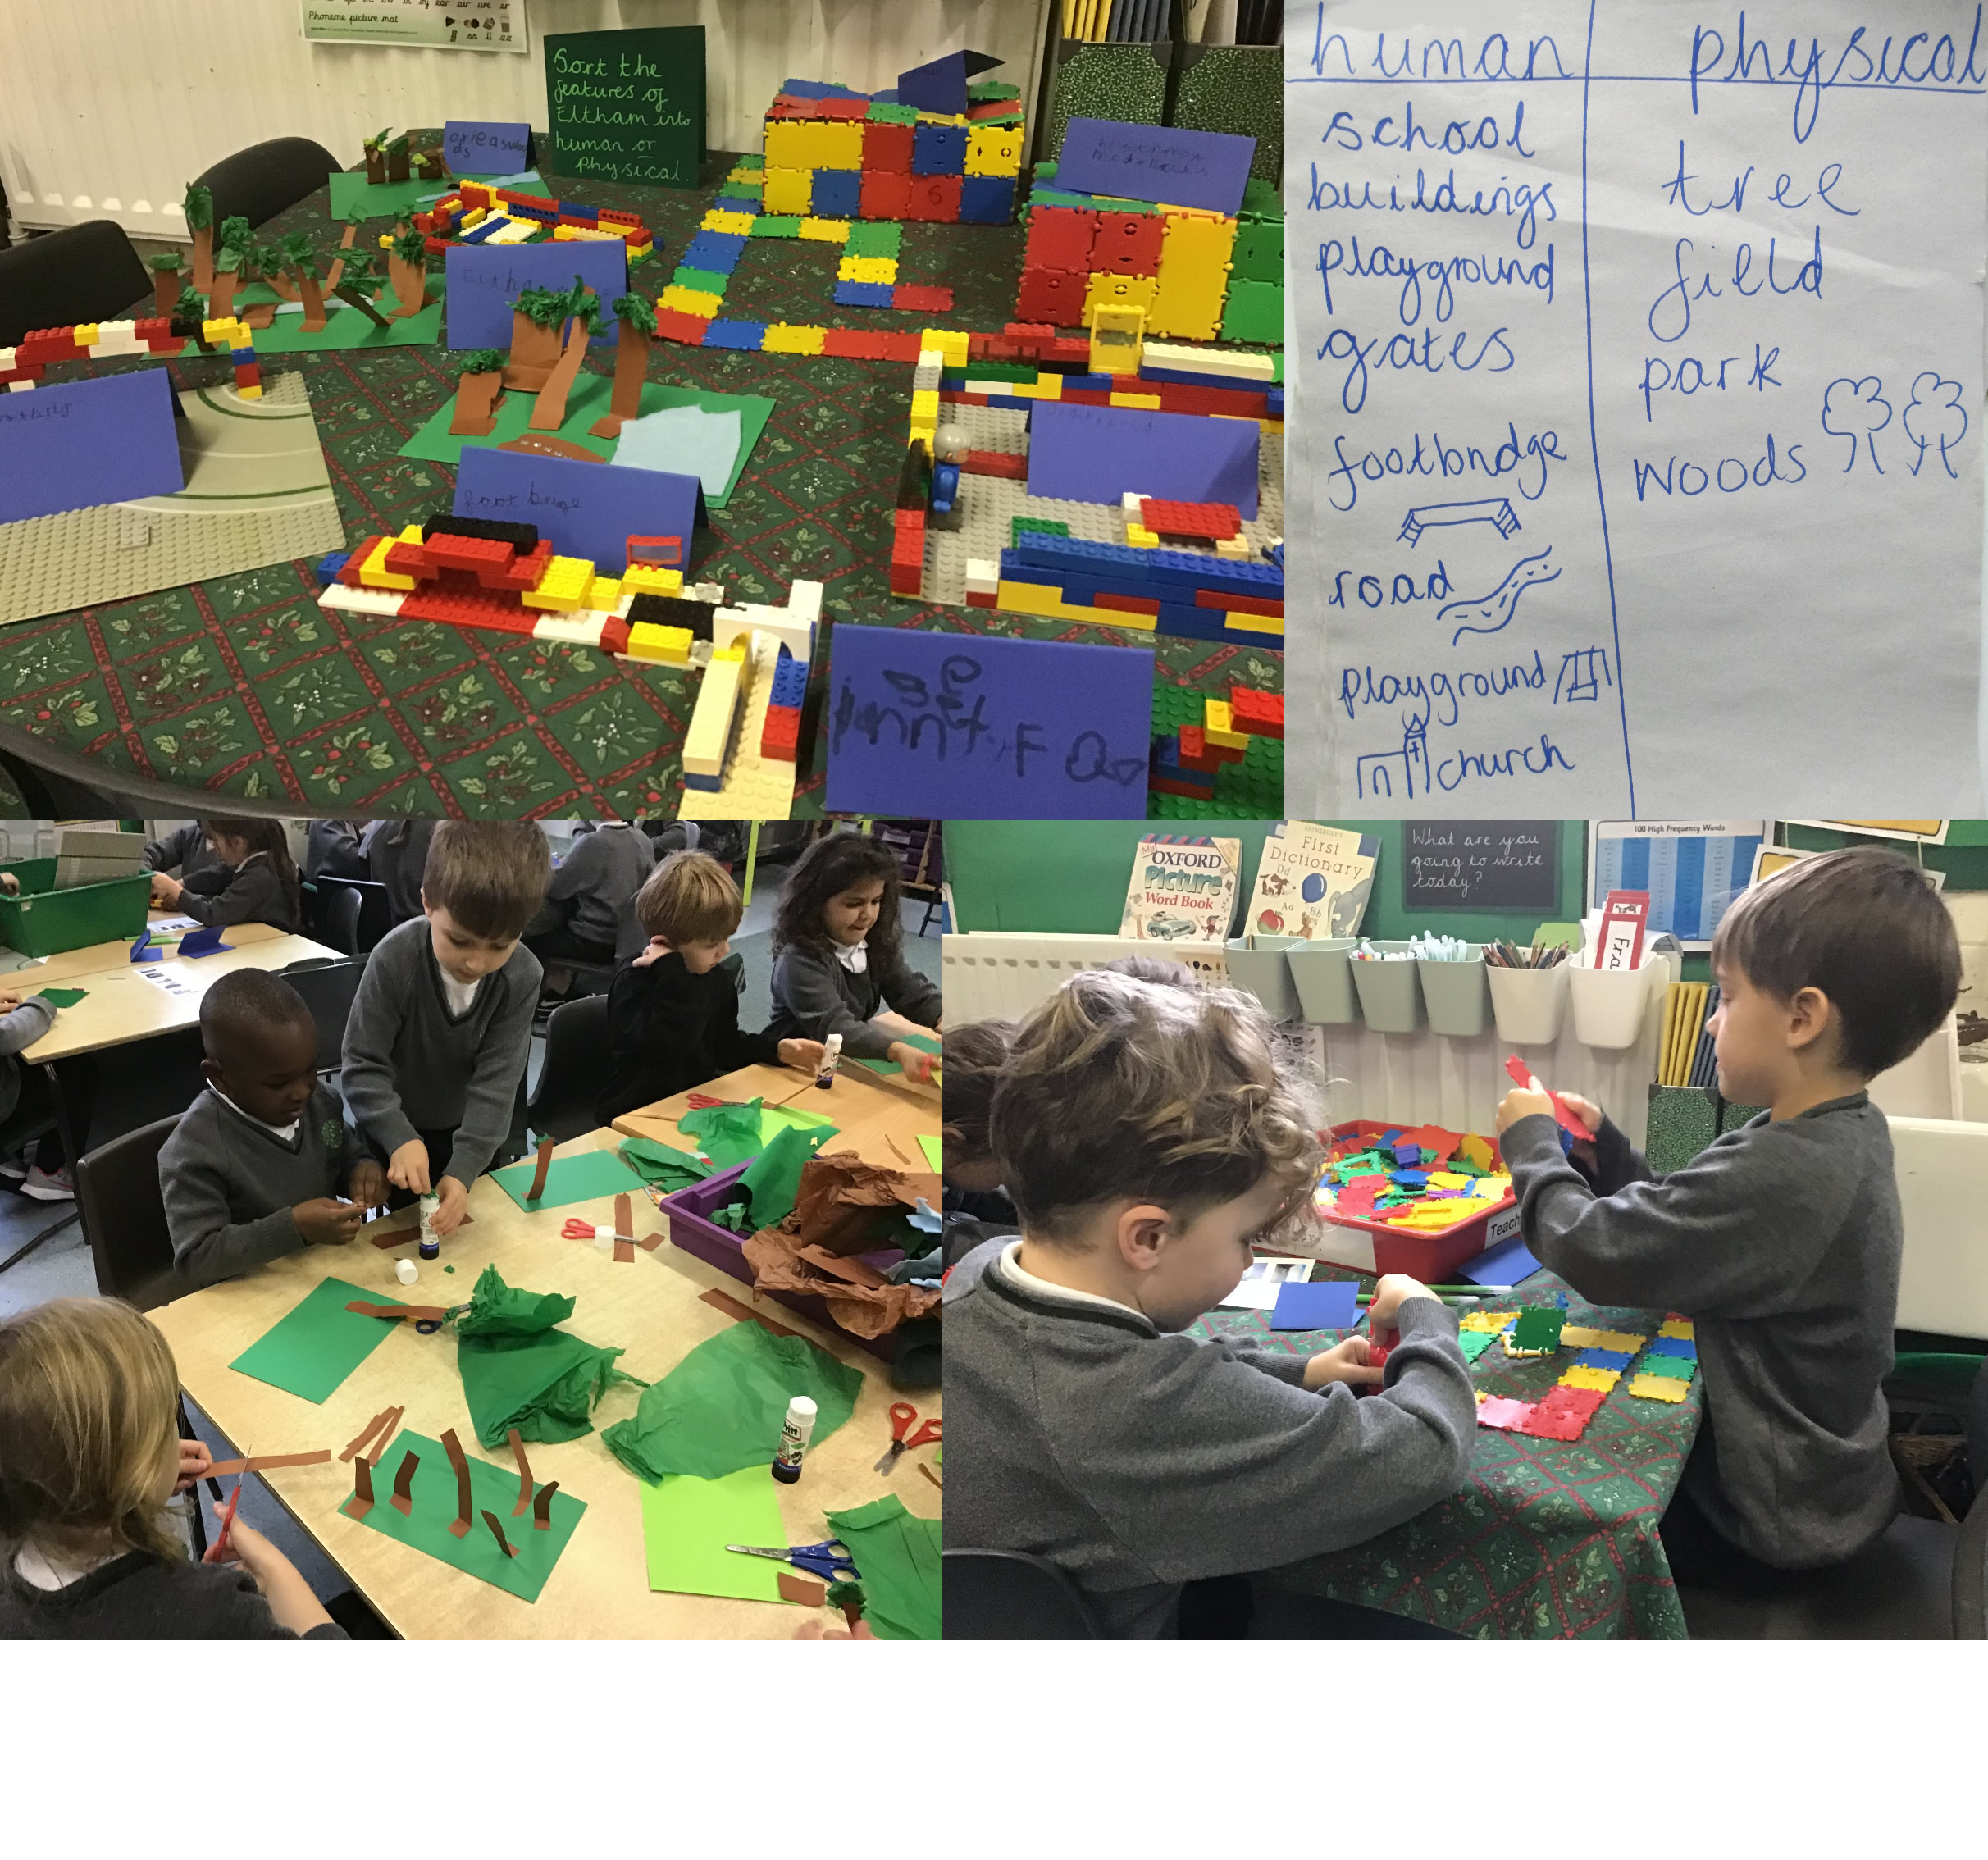 Making models of human and physical landscape features.